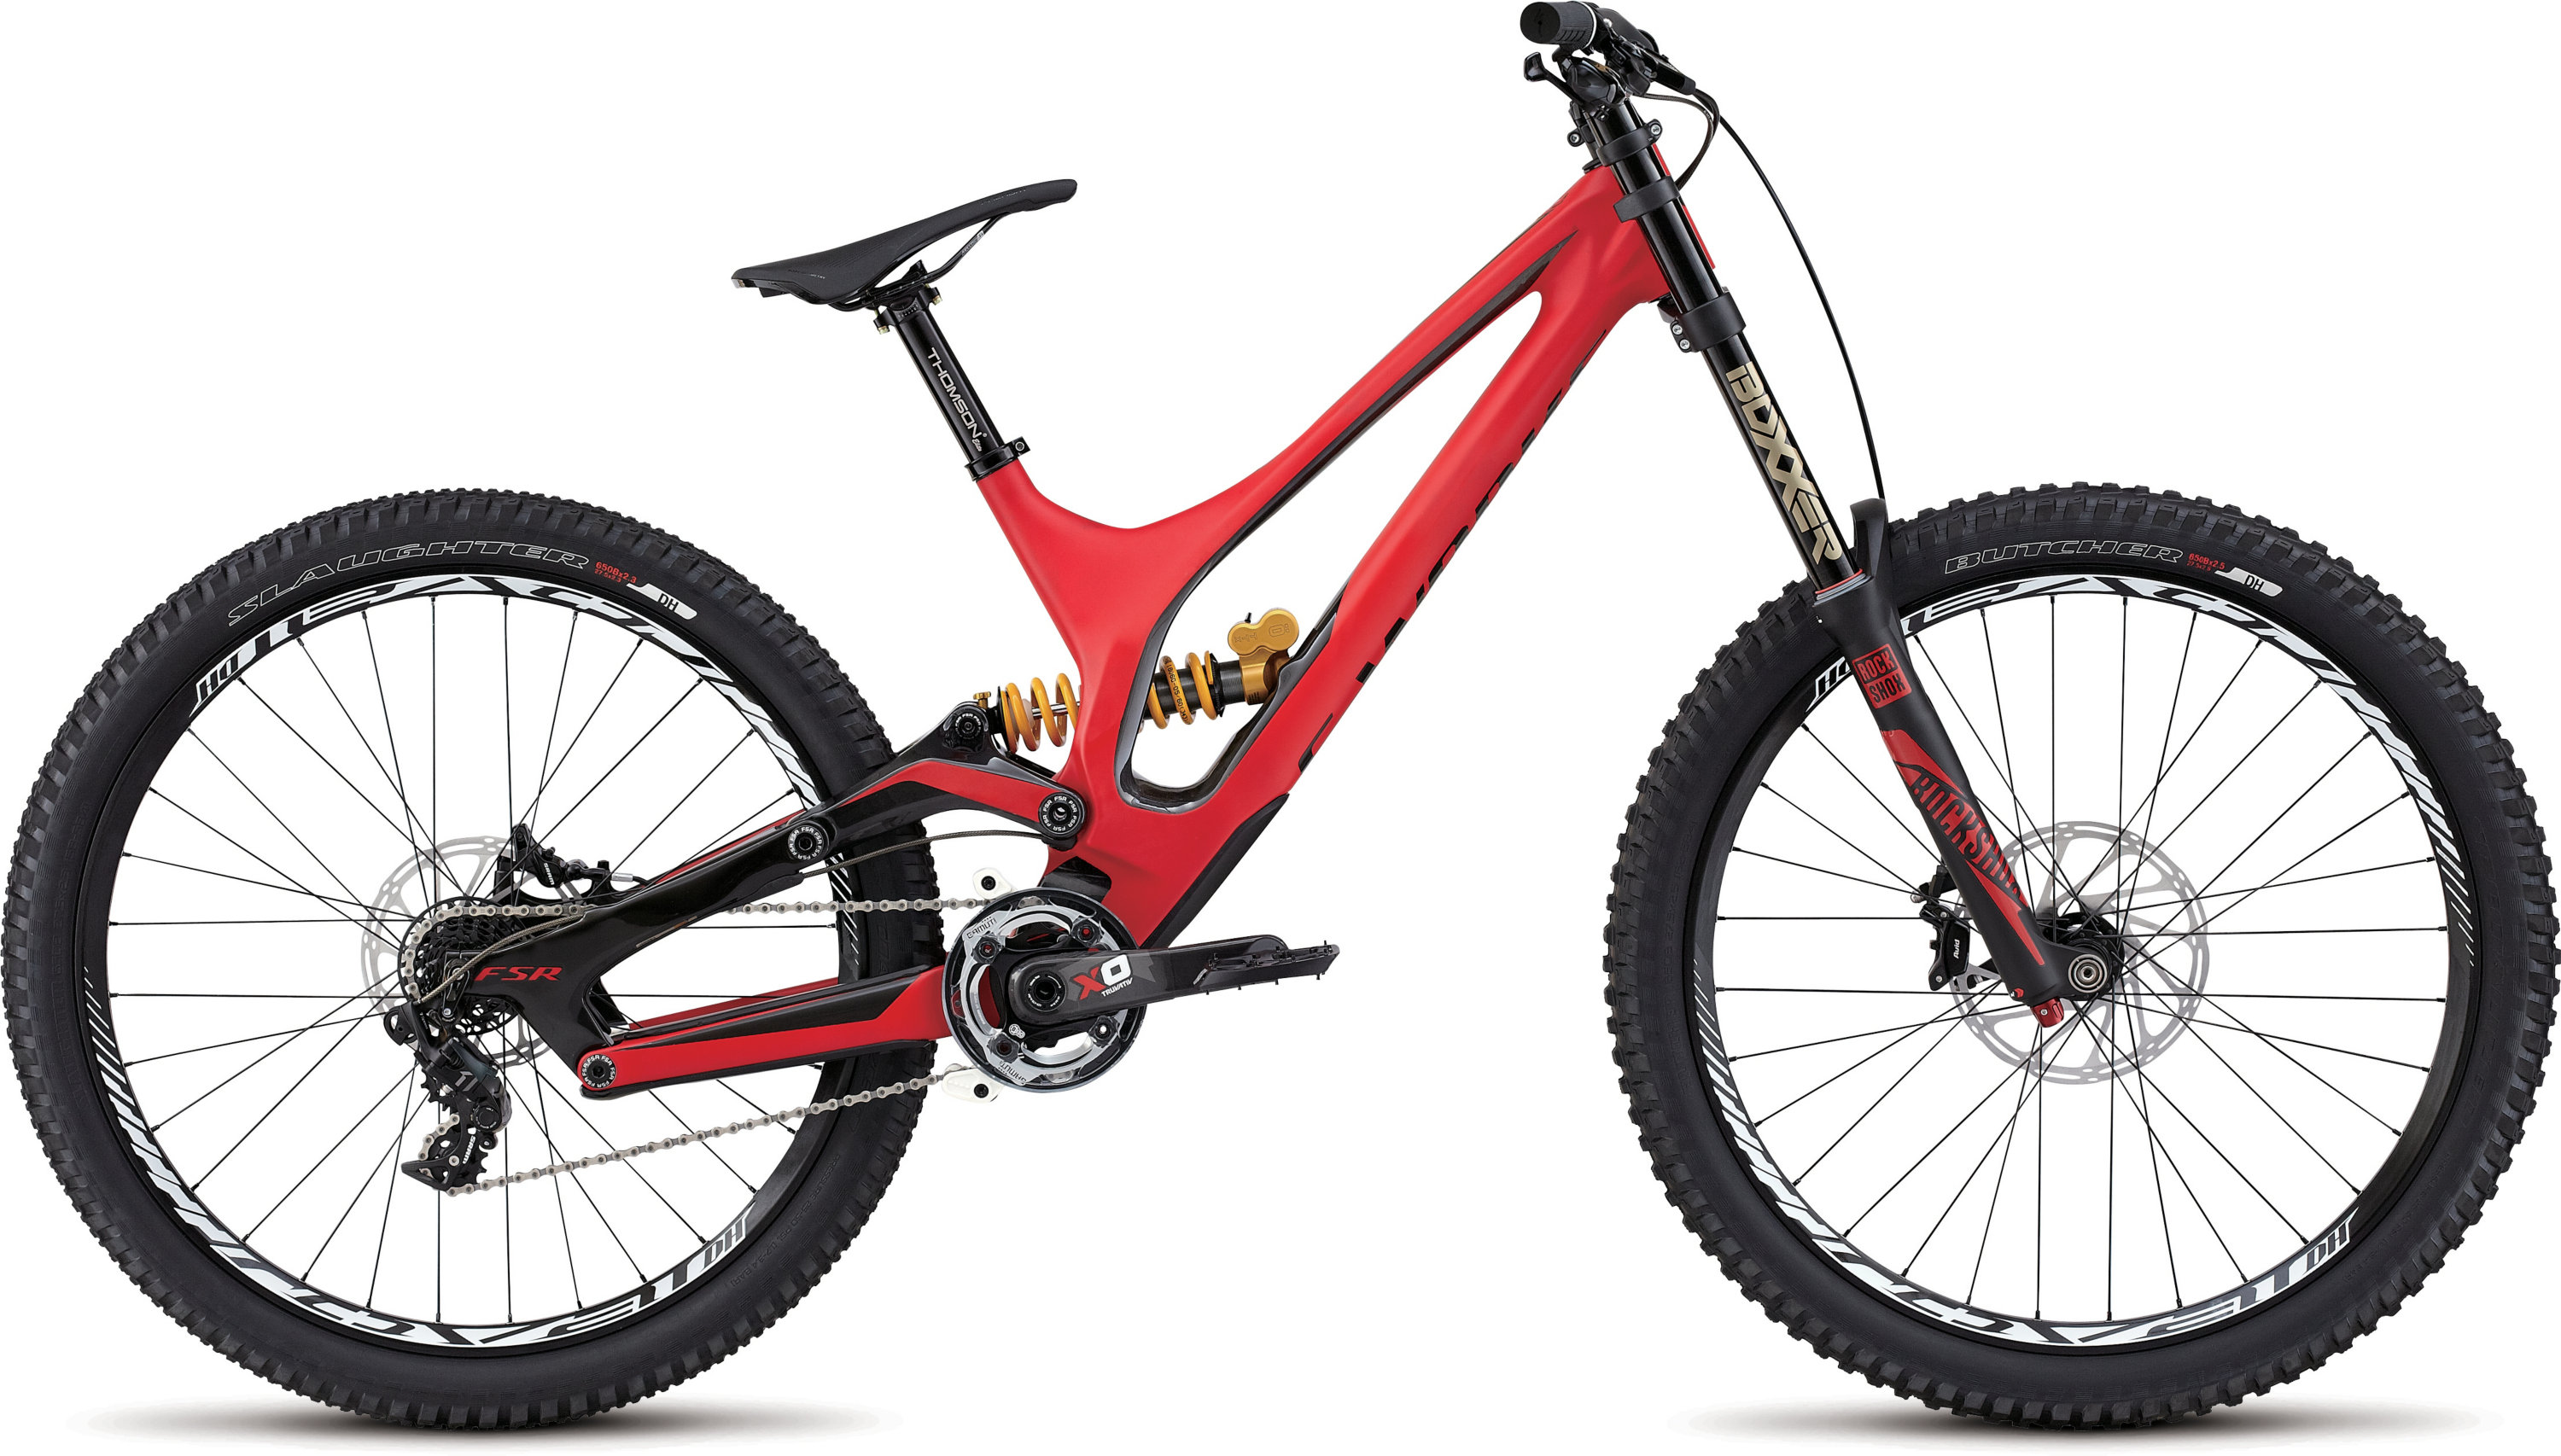 SPECIALIZED SW DEMO 8 FSR CARBON 650B RED/CARB LNG - SPECIALIZED SW DEMO 8 FSR CARBON 650B RED/CARB LNG